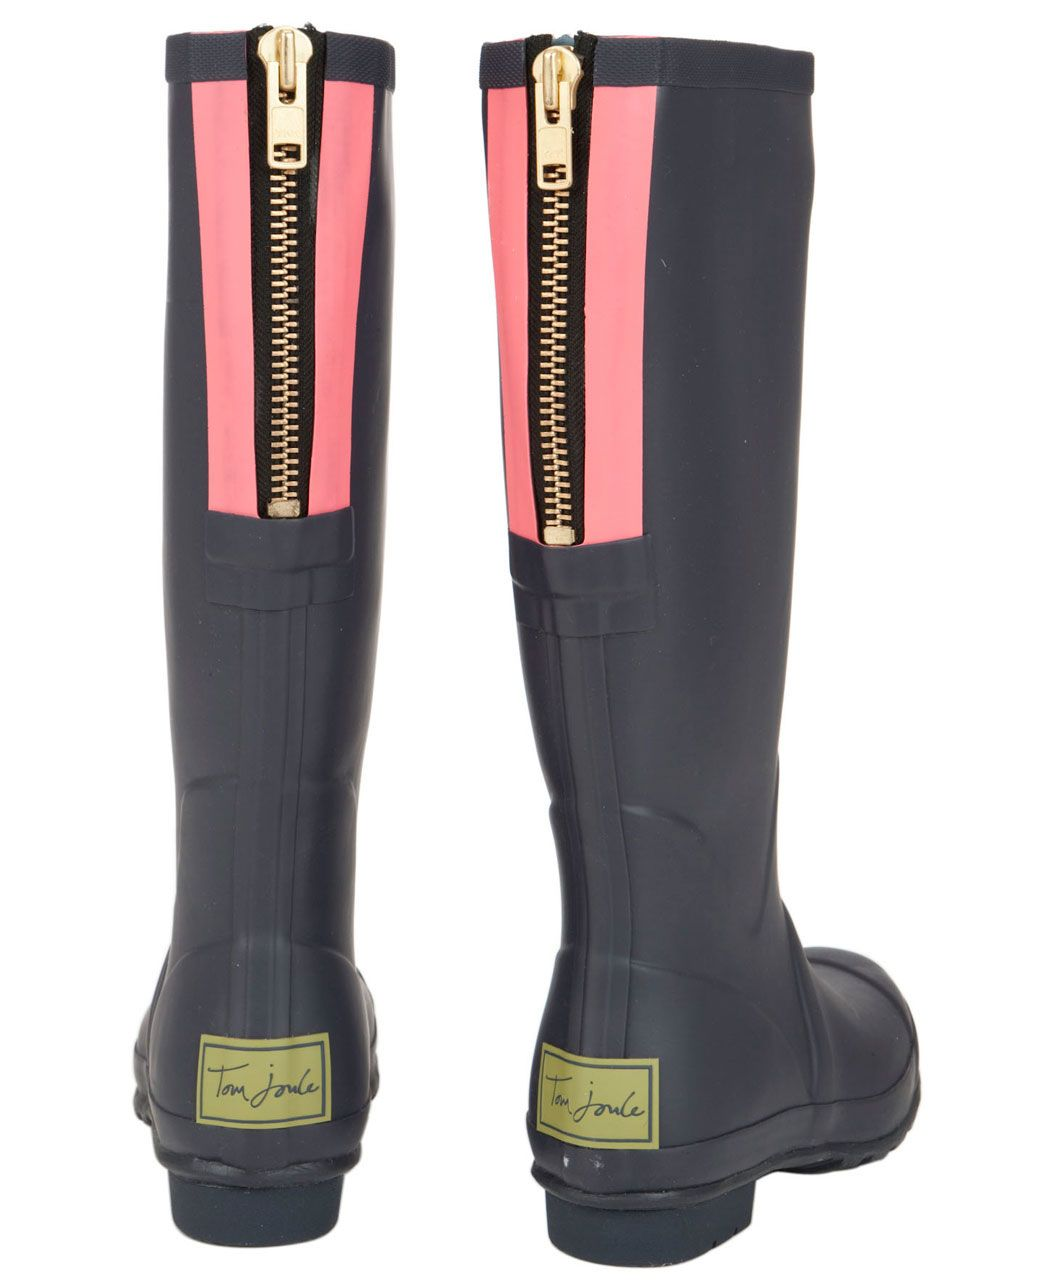 loving these dressy rainboots cause even on rainy days you never